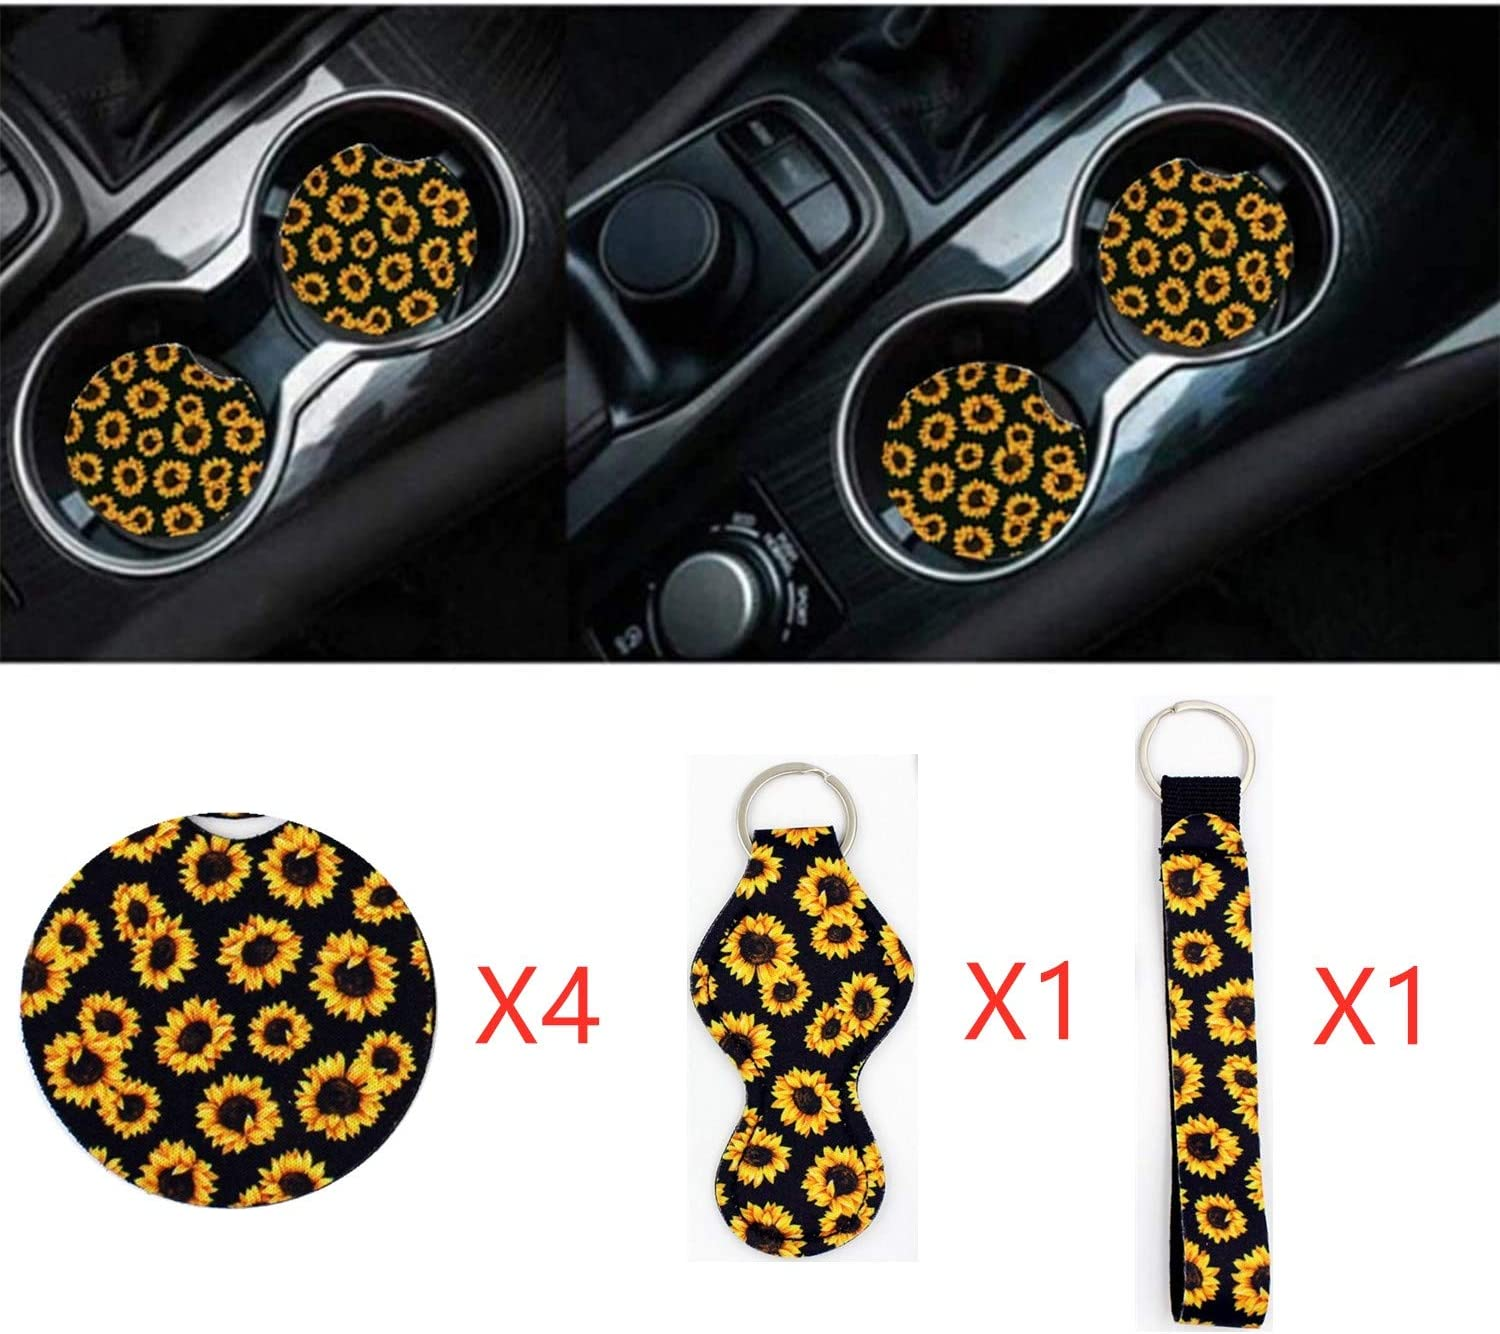 Guoord 6Pack of car Interior Accessories,4 x 2.56 Silicone Car Coasters Cup Holder/& 1 x Bracelet Lanyard Keychain/& 1 x Chapstick Holder Lanyard Keychain,Unique Women Gift Sunflower Car Coasters